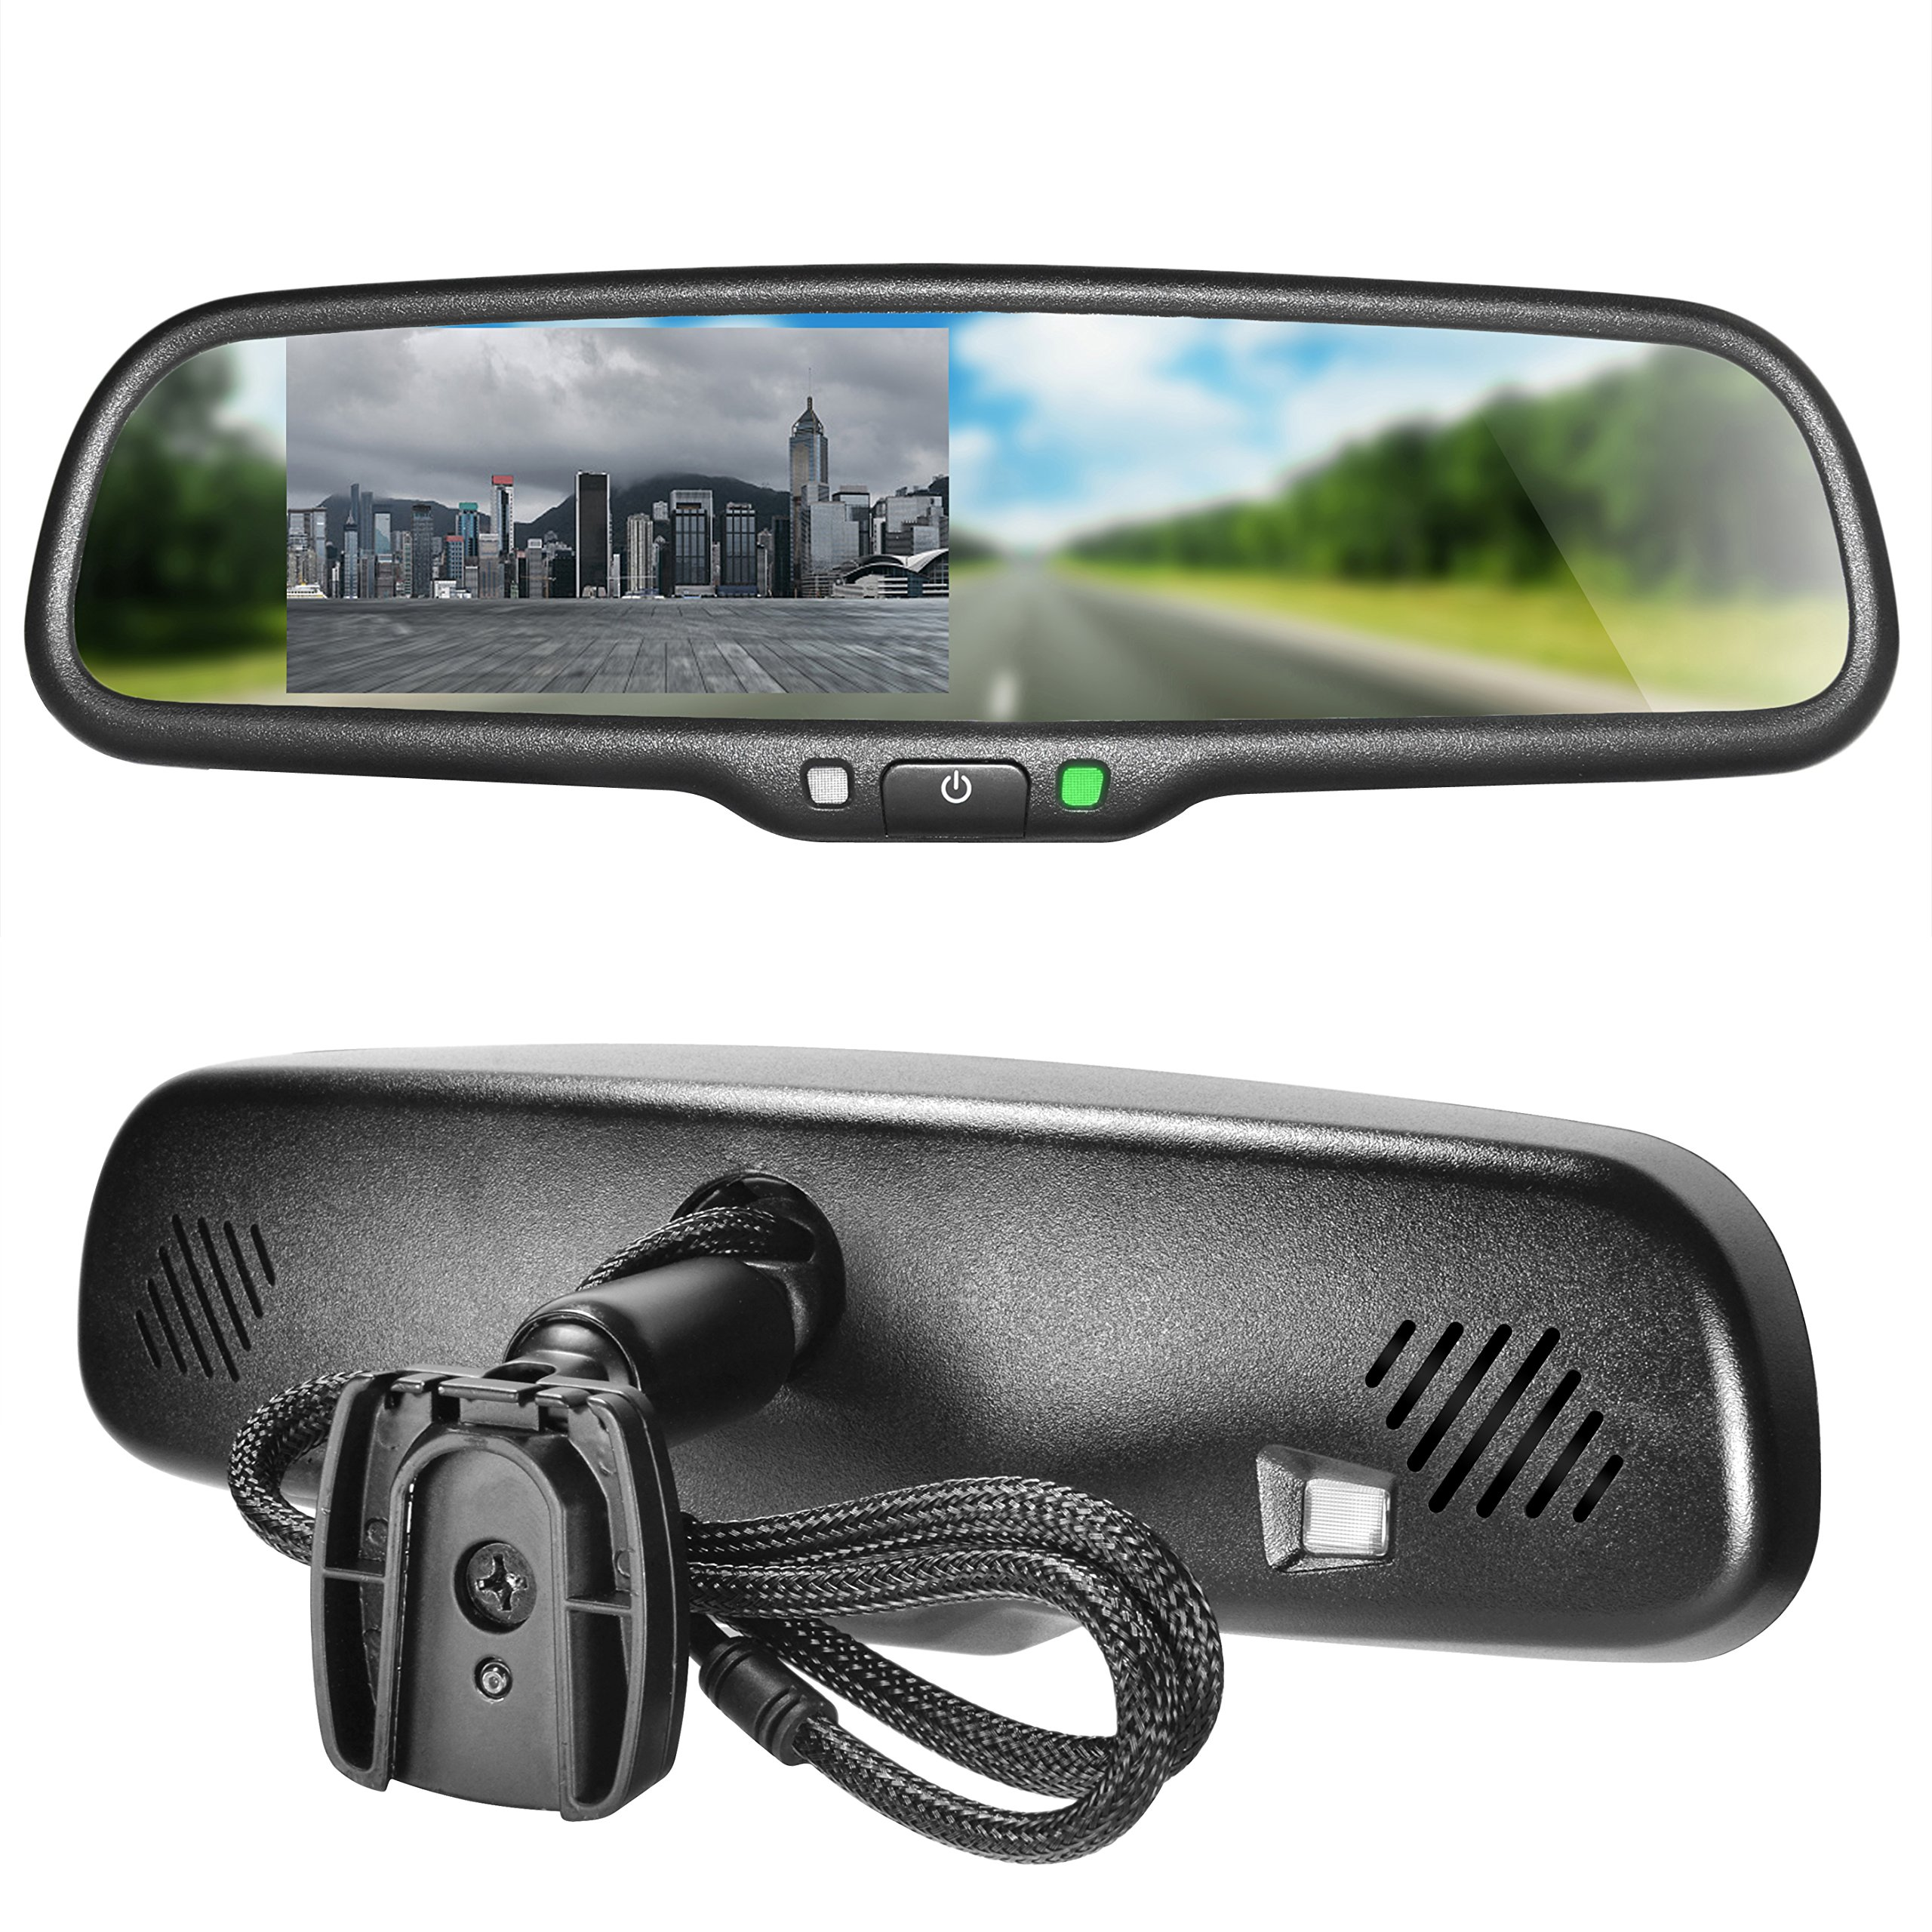 Best Rated In Car Mirror Mounted Video Helpful Customer Reviews Free Volvo Wiring Diagrams Master Tailgaters Oem Rear View With 43 Auto Adjusting Brightness Lcd Rearview Universal Fit